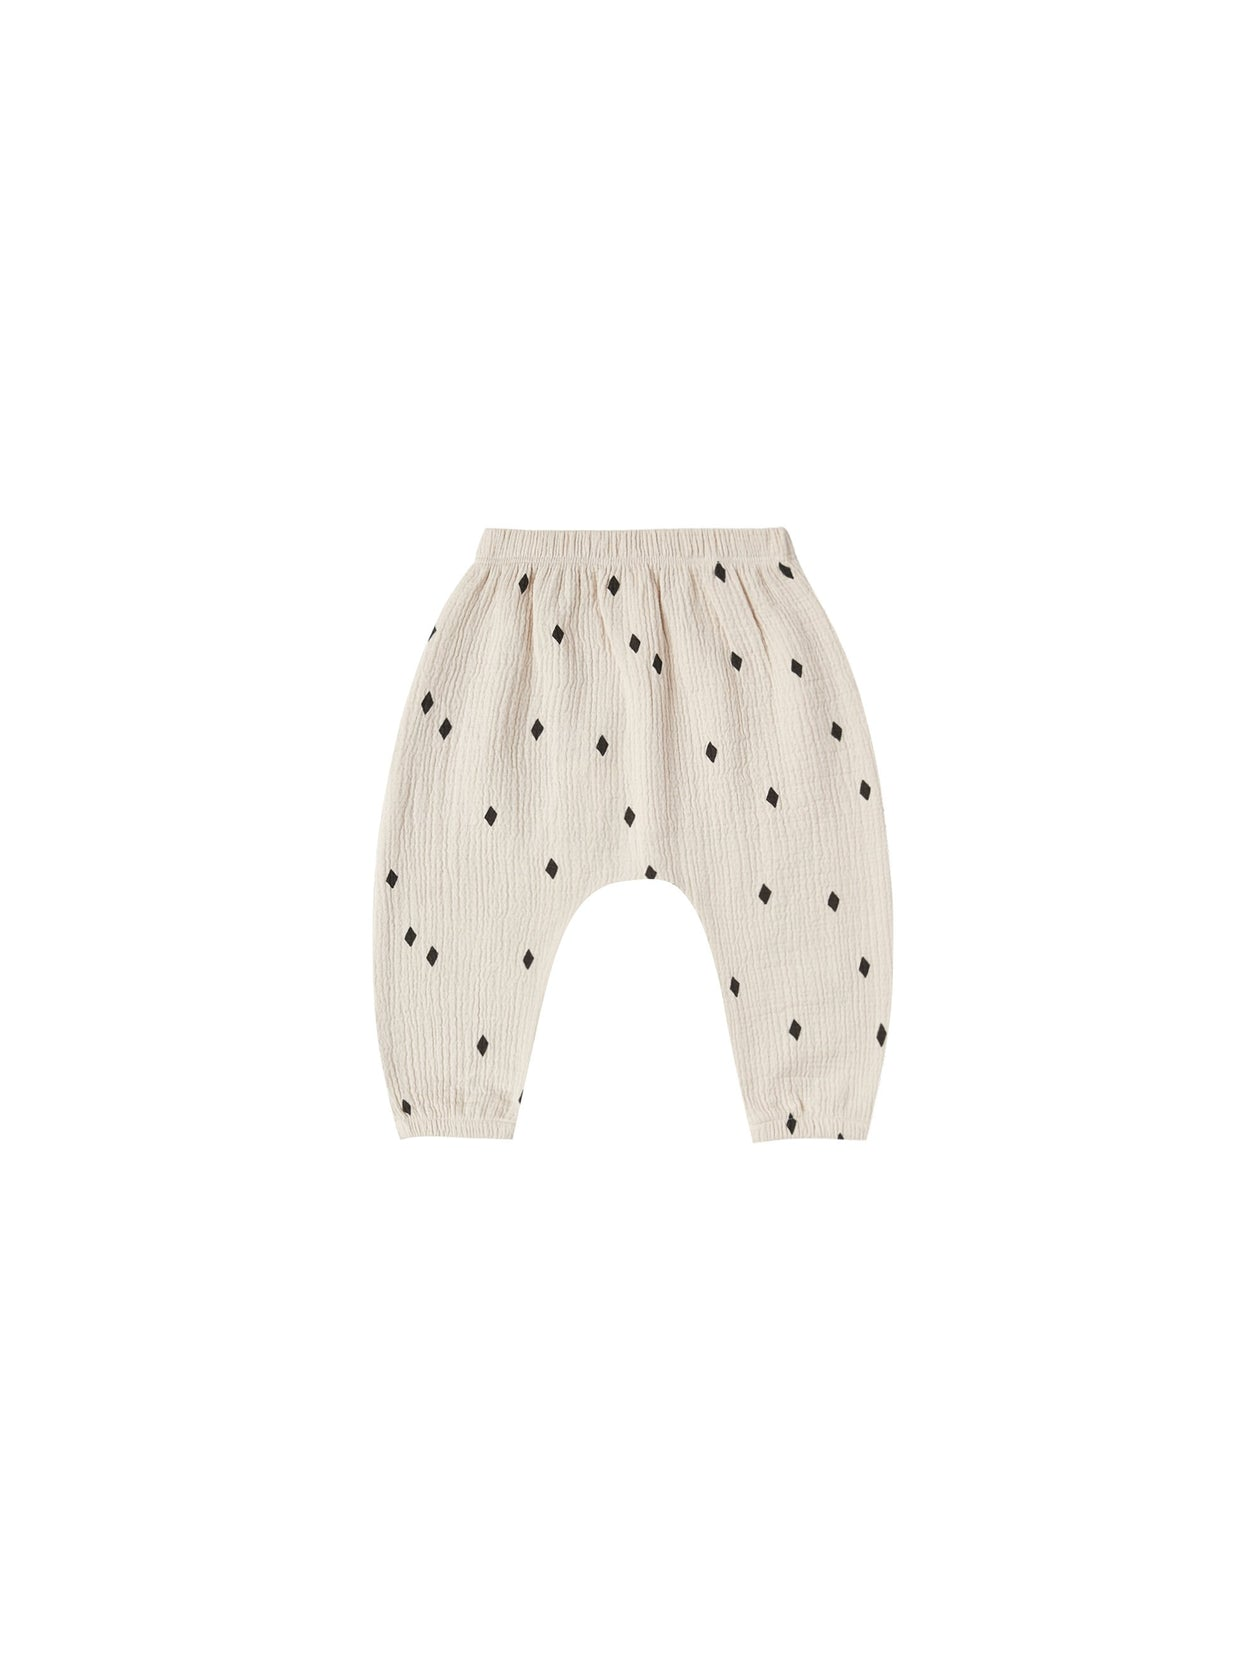 Quincy Mae Woven Harem Pant Natural